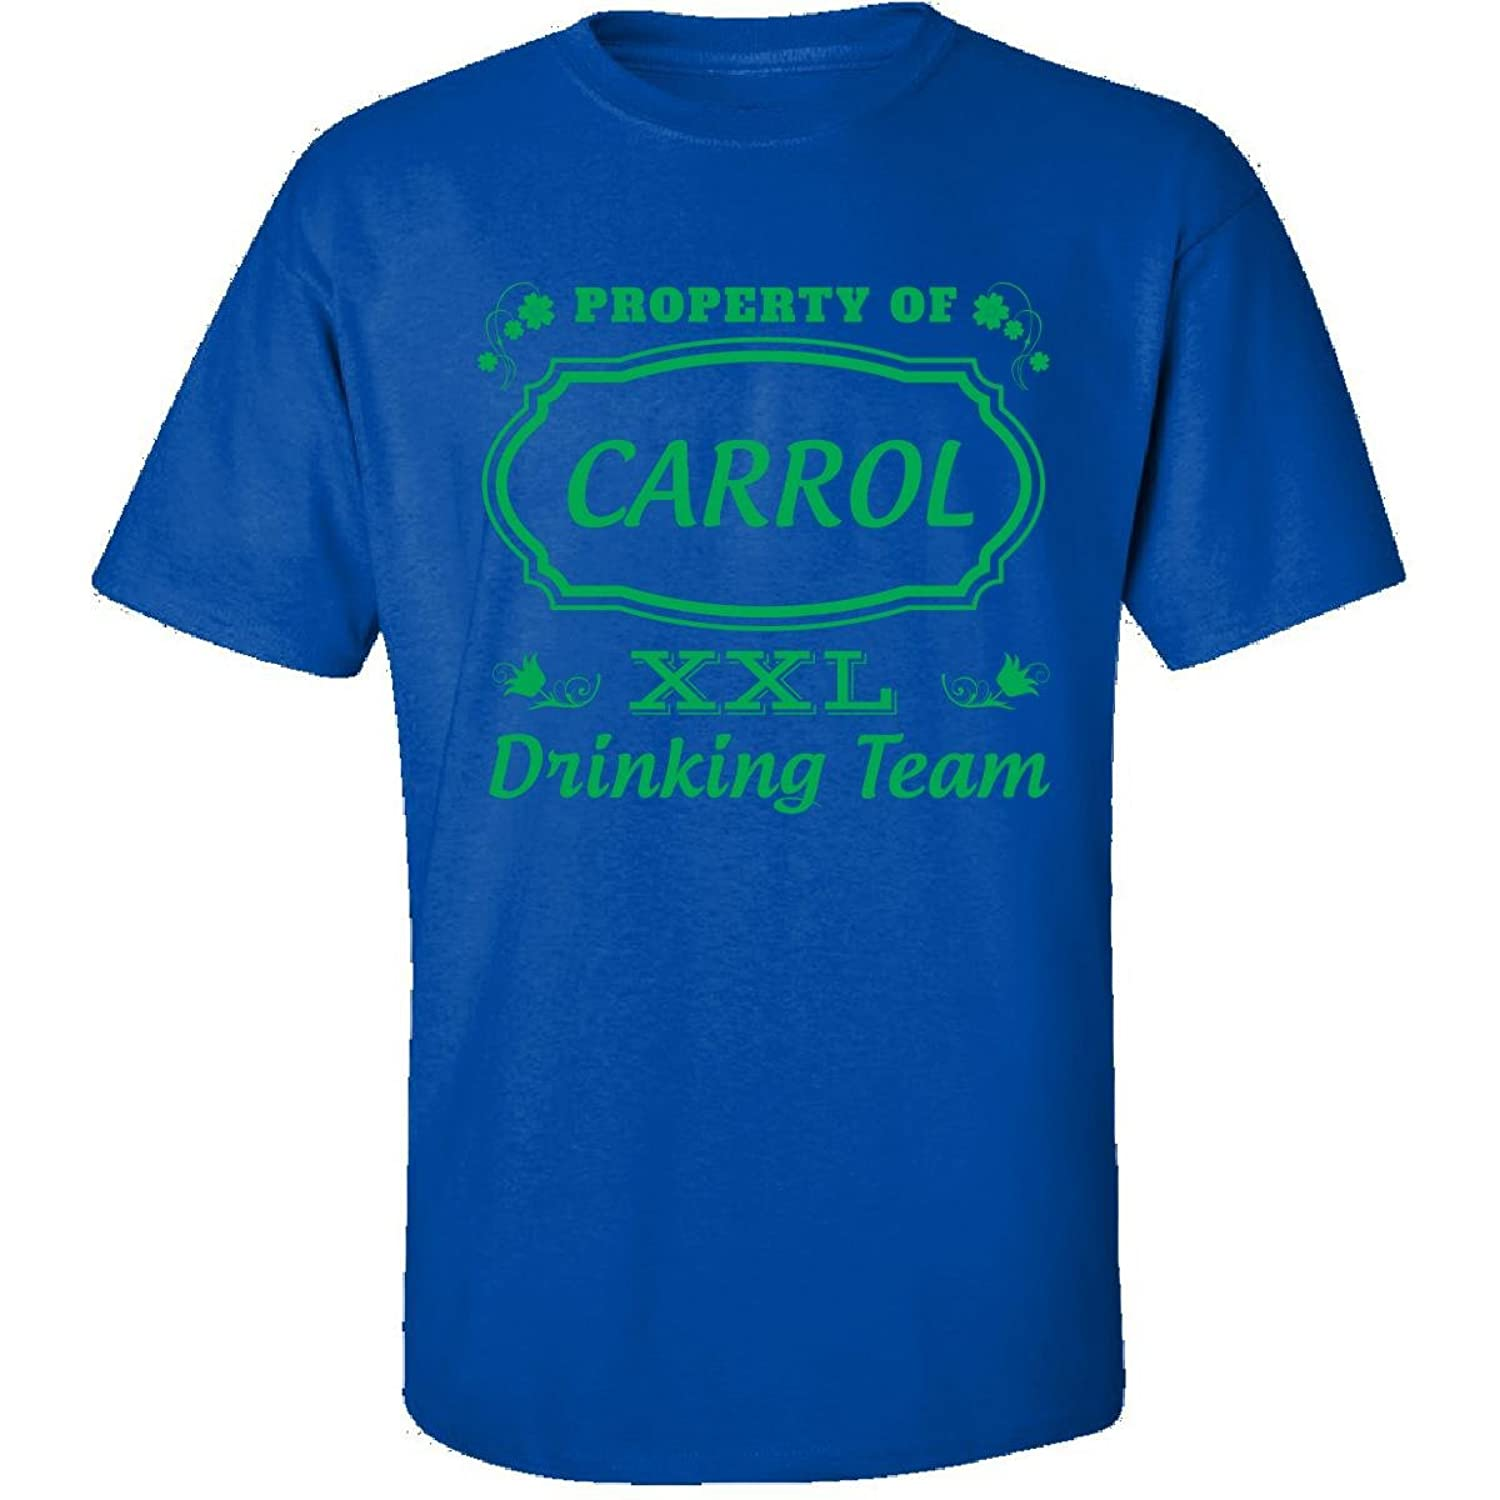 Property Of Carrol St Patrick Day Beer Drinking Team - Adult Shirt